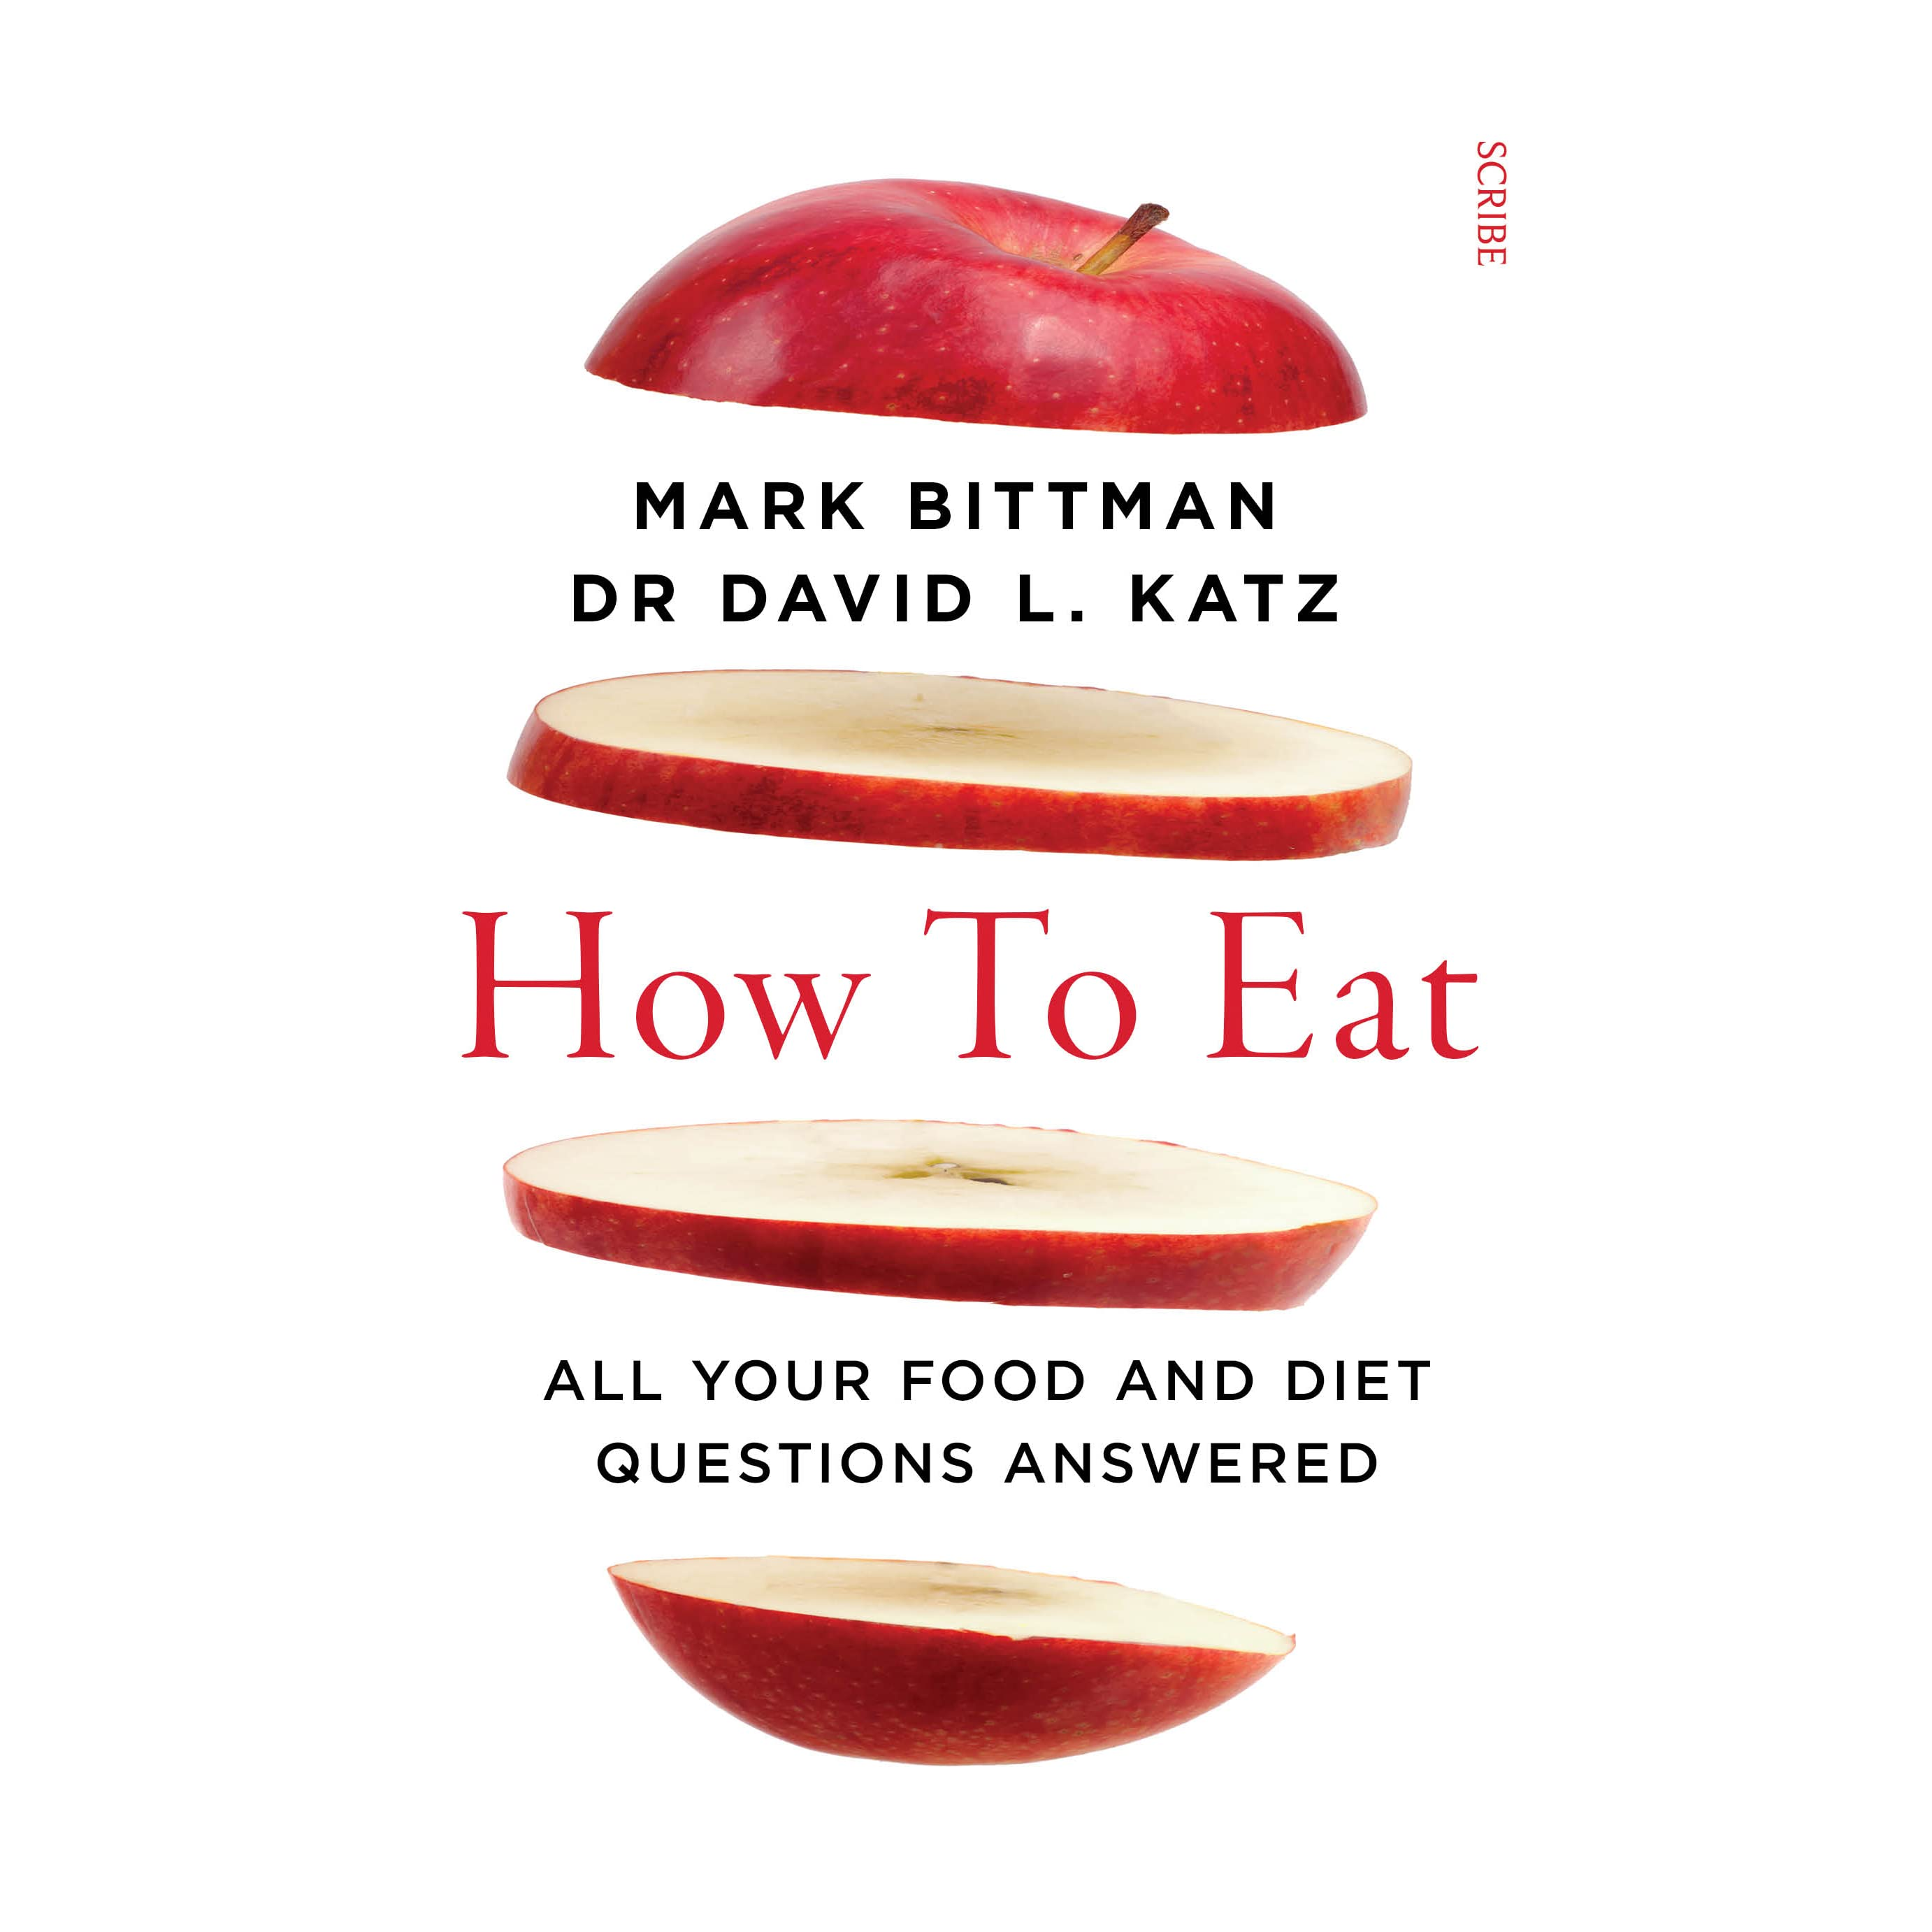 diet questions answered by Mark Bittman